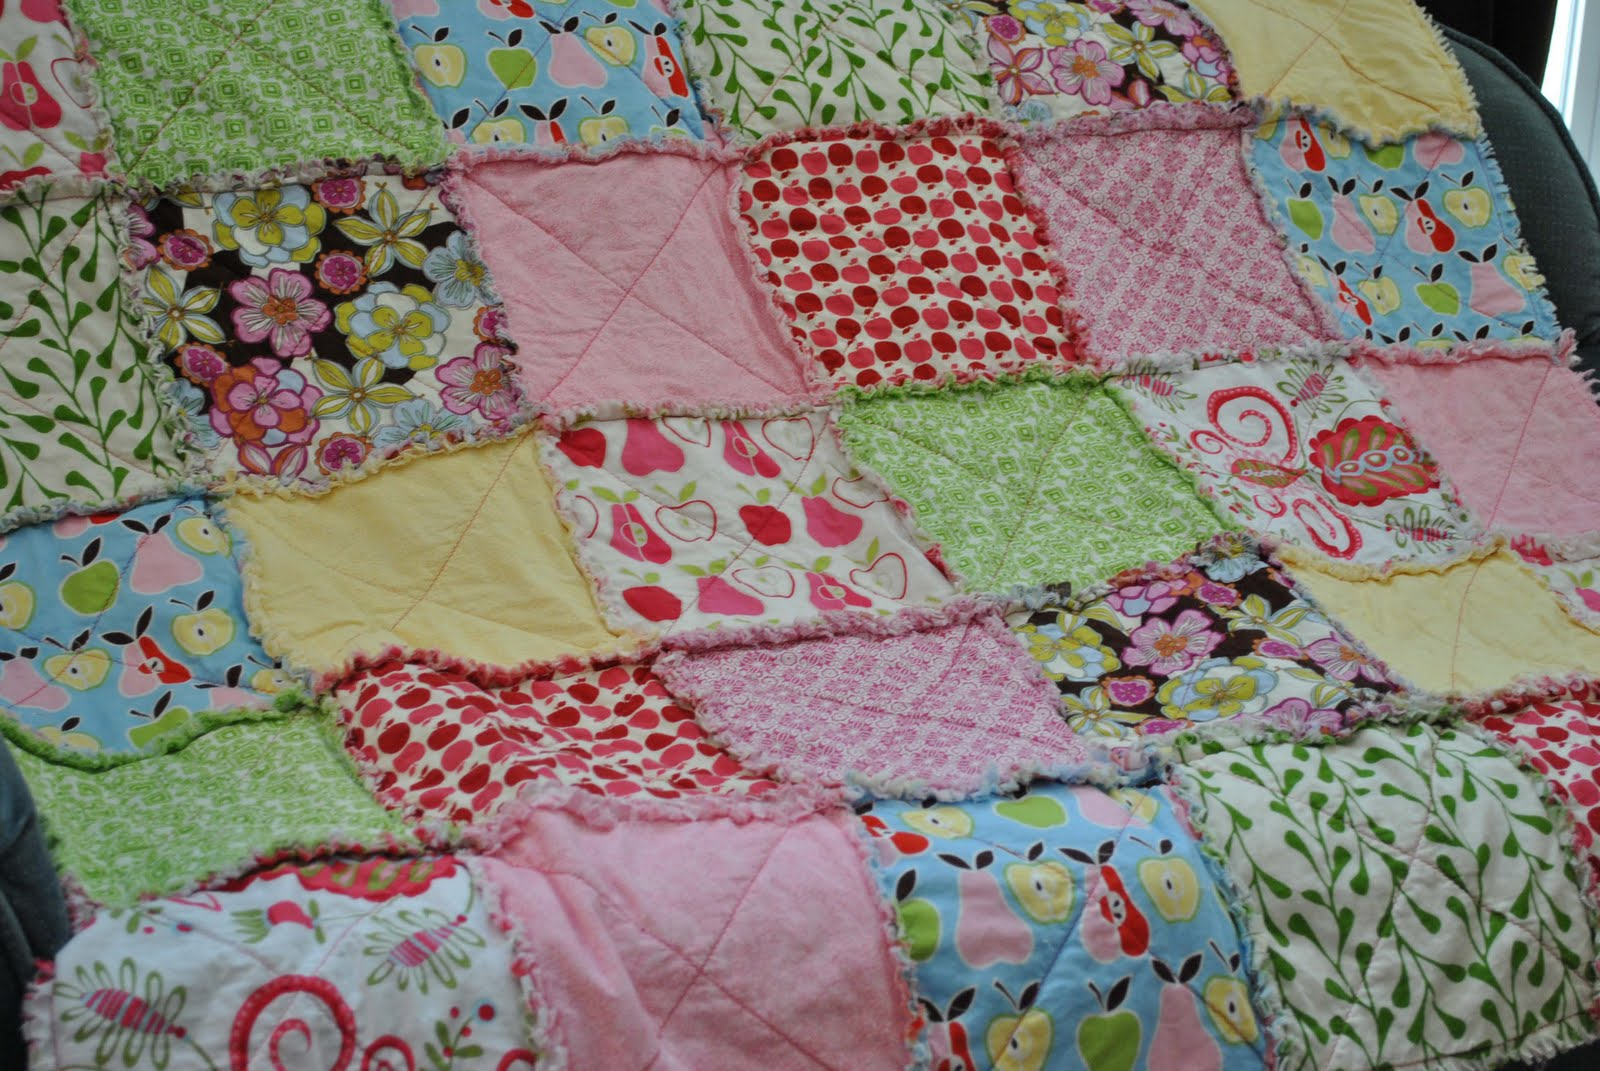 Celebrating Today: How to Make a Rag Quilt